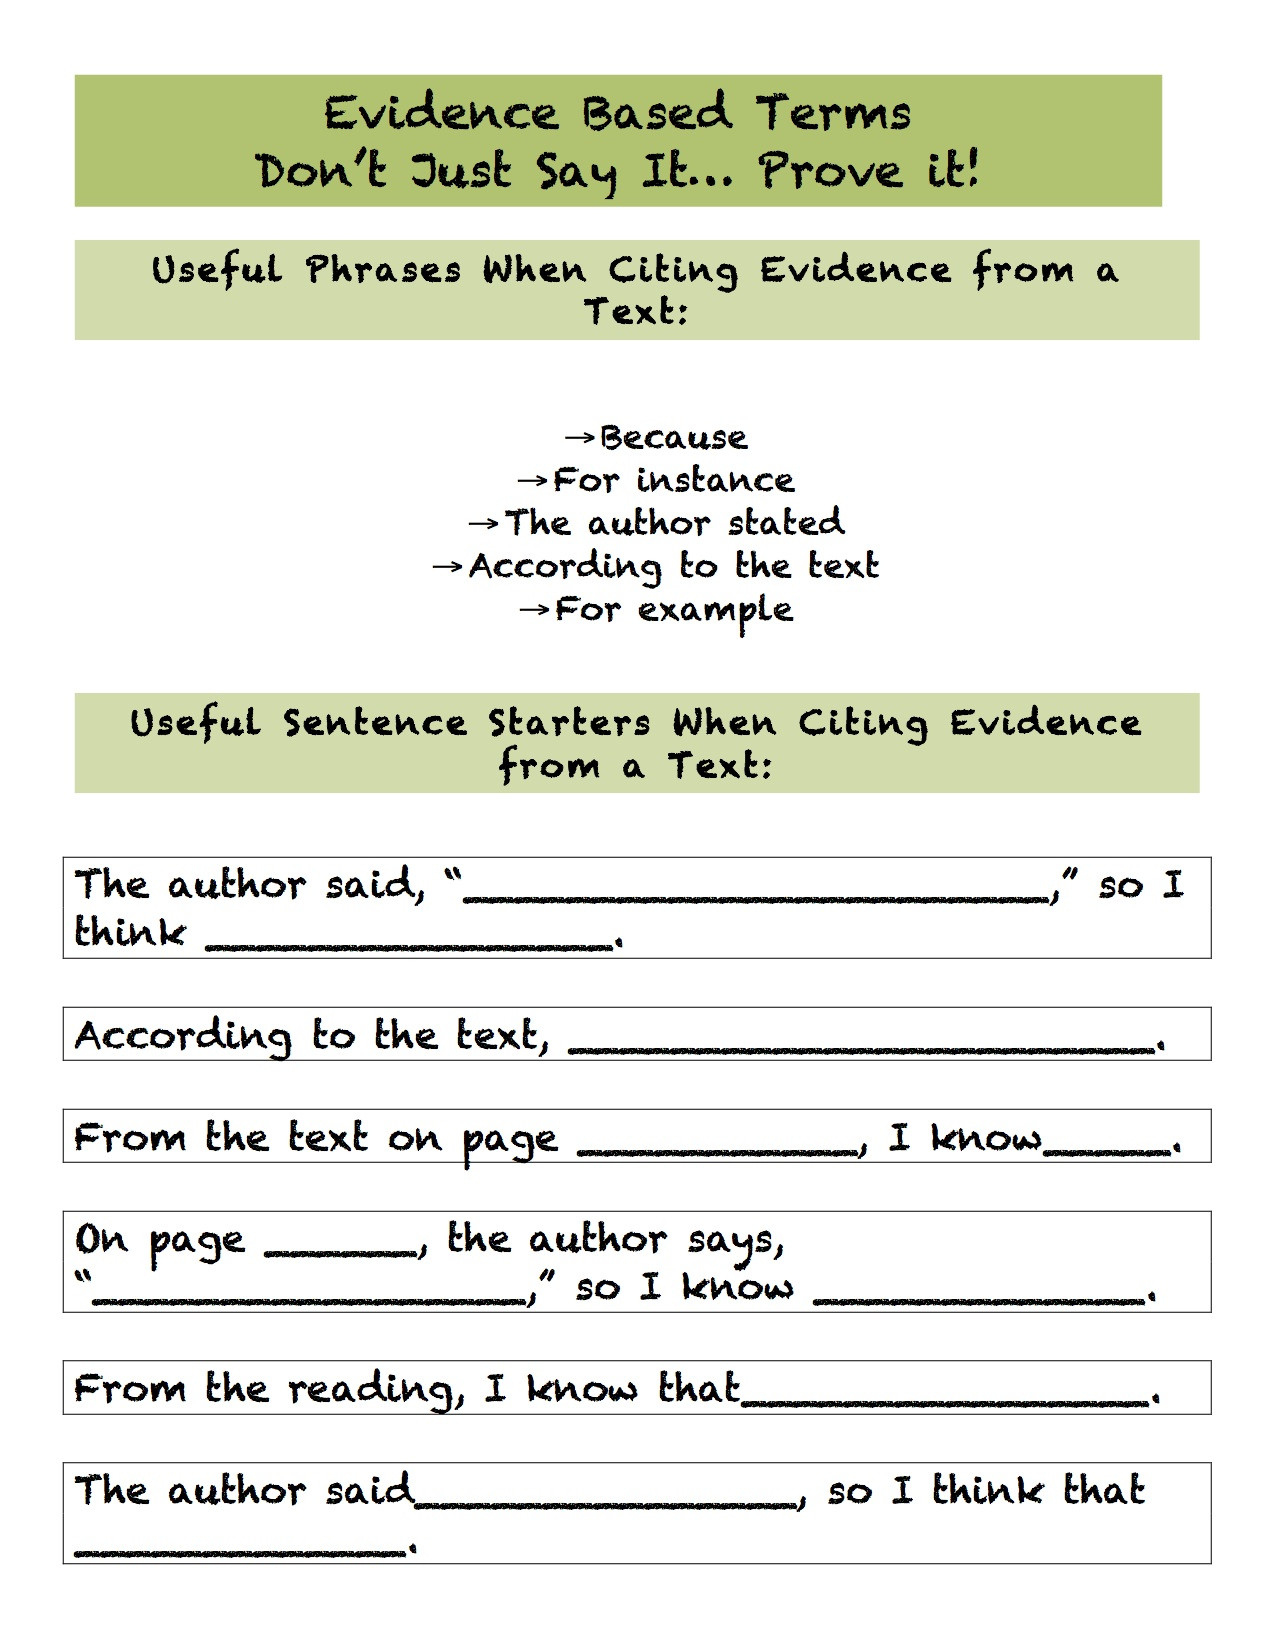 Citing Textual Evidence Worksheet Citing Text Evidence Worksheet